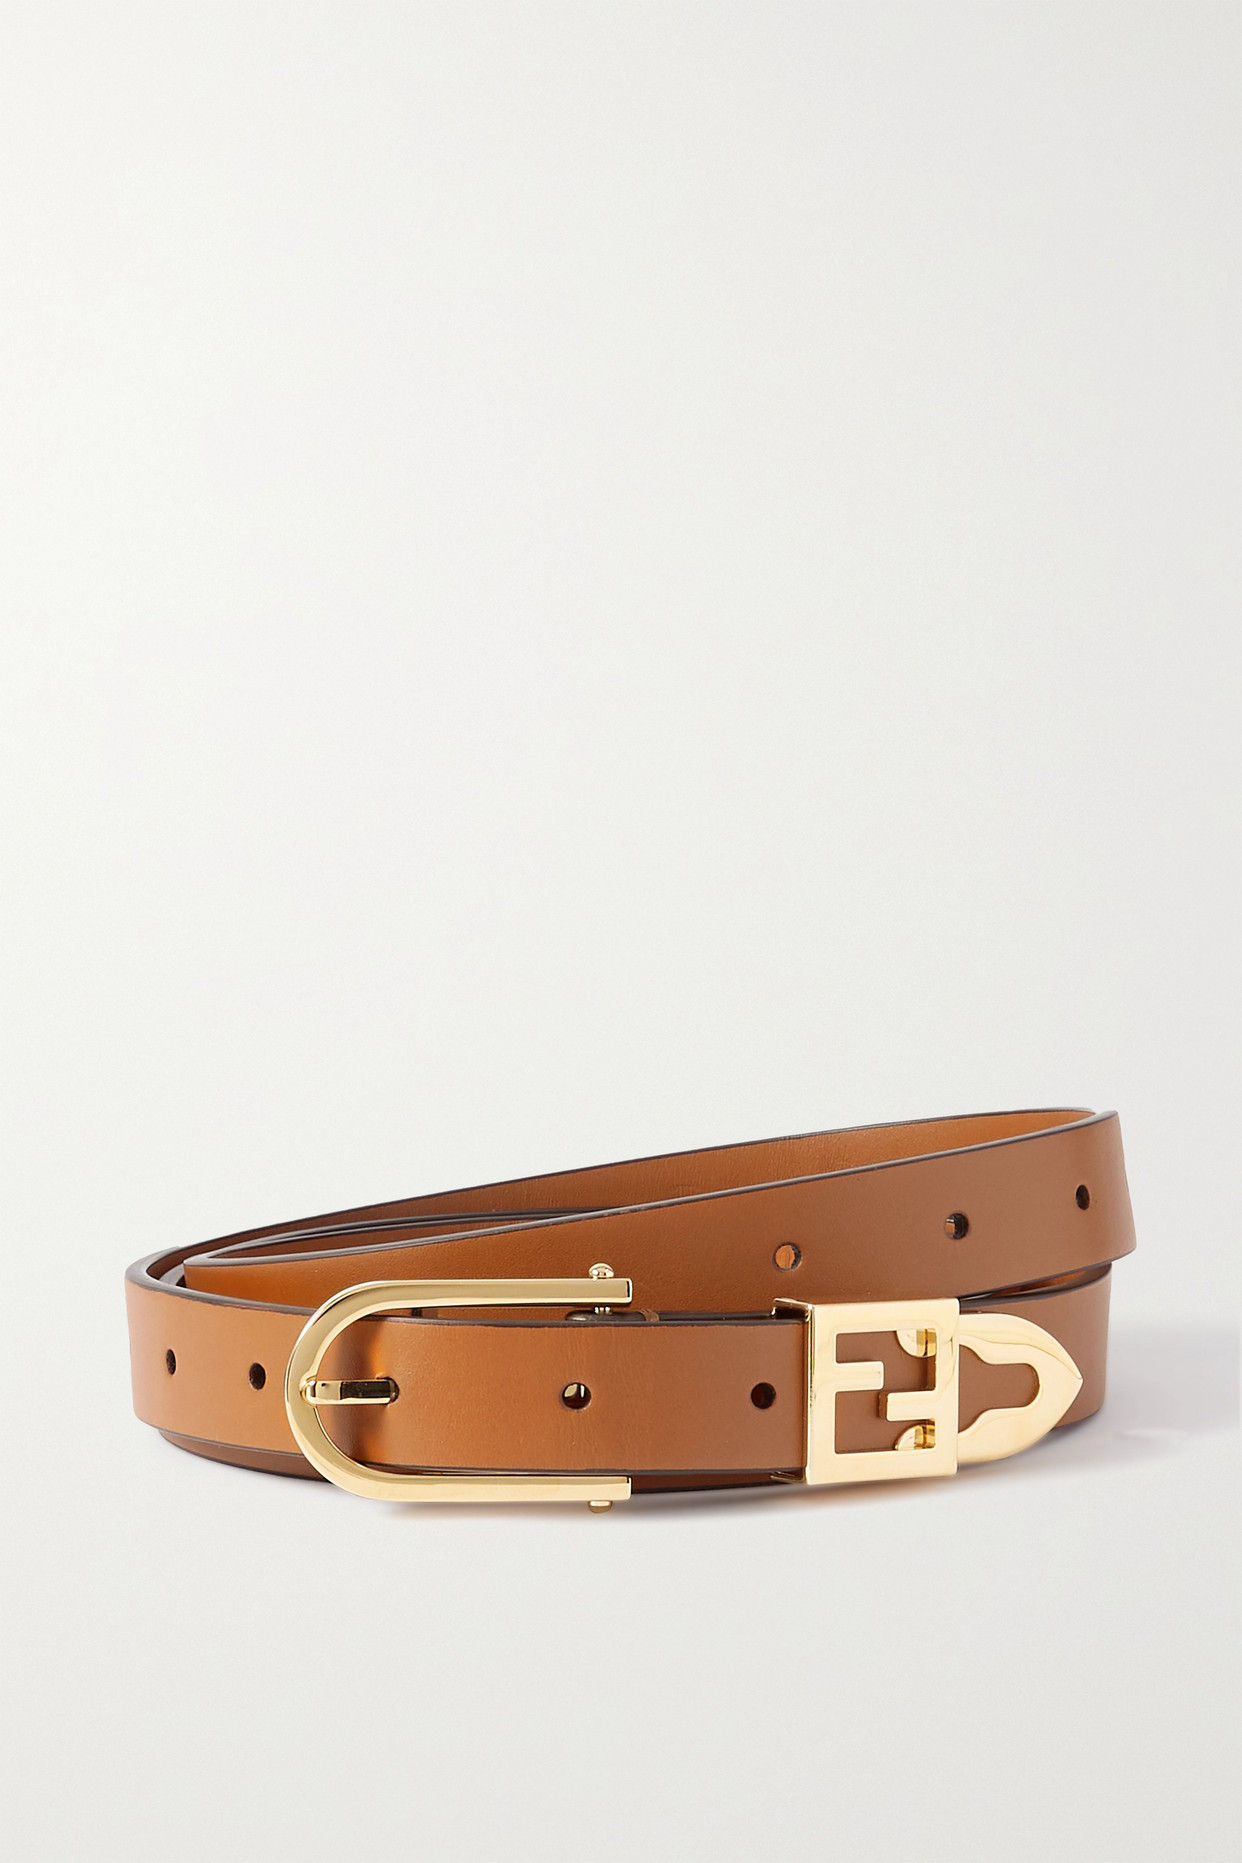 FENDI - Leather Belt - Brown - one size